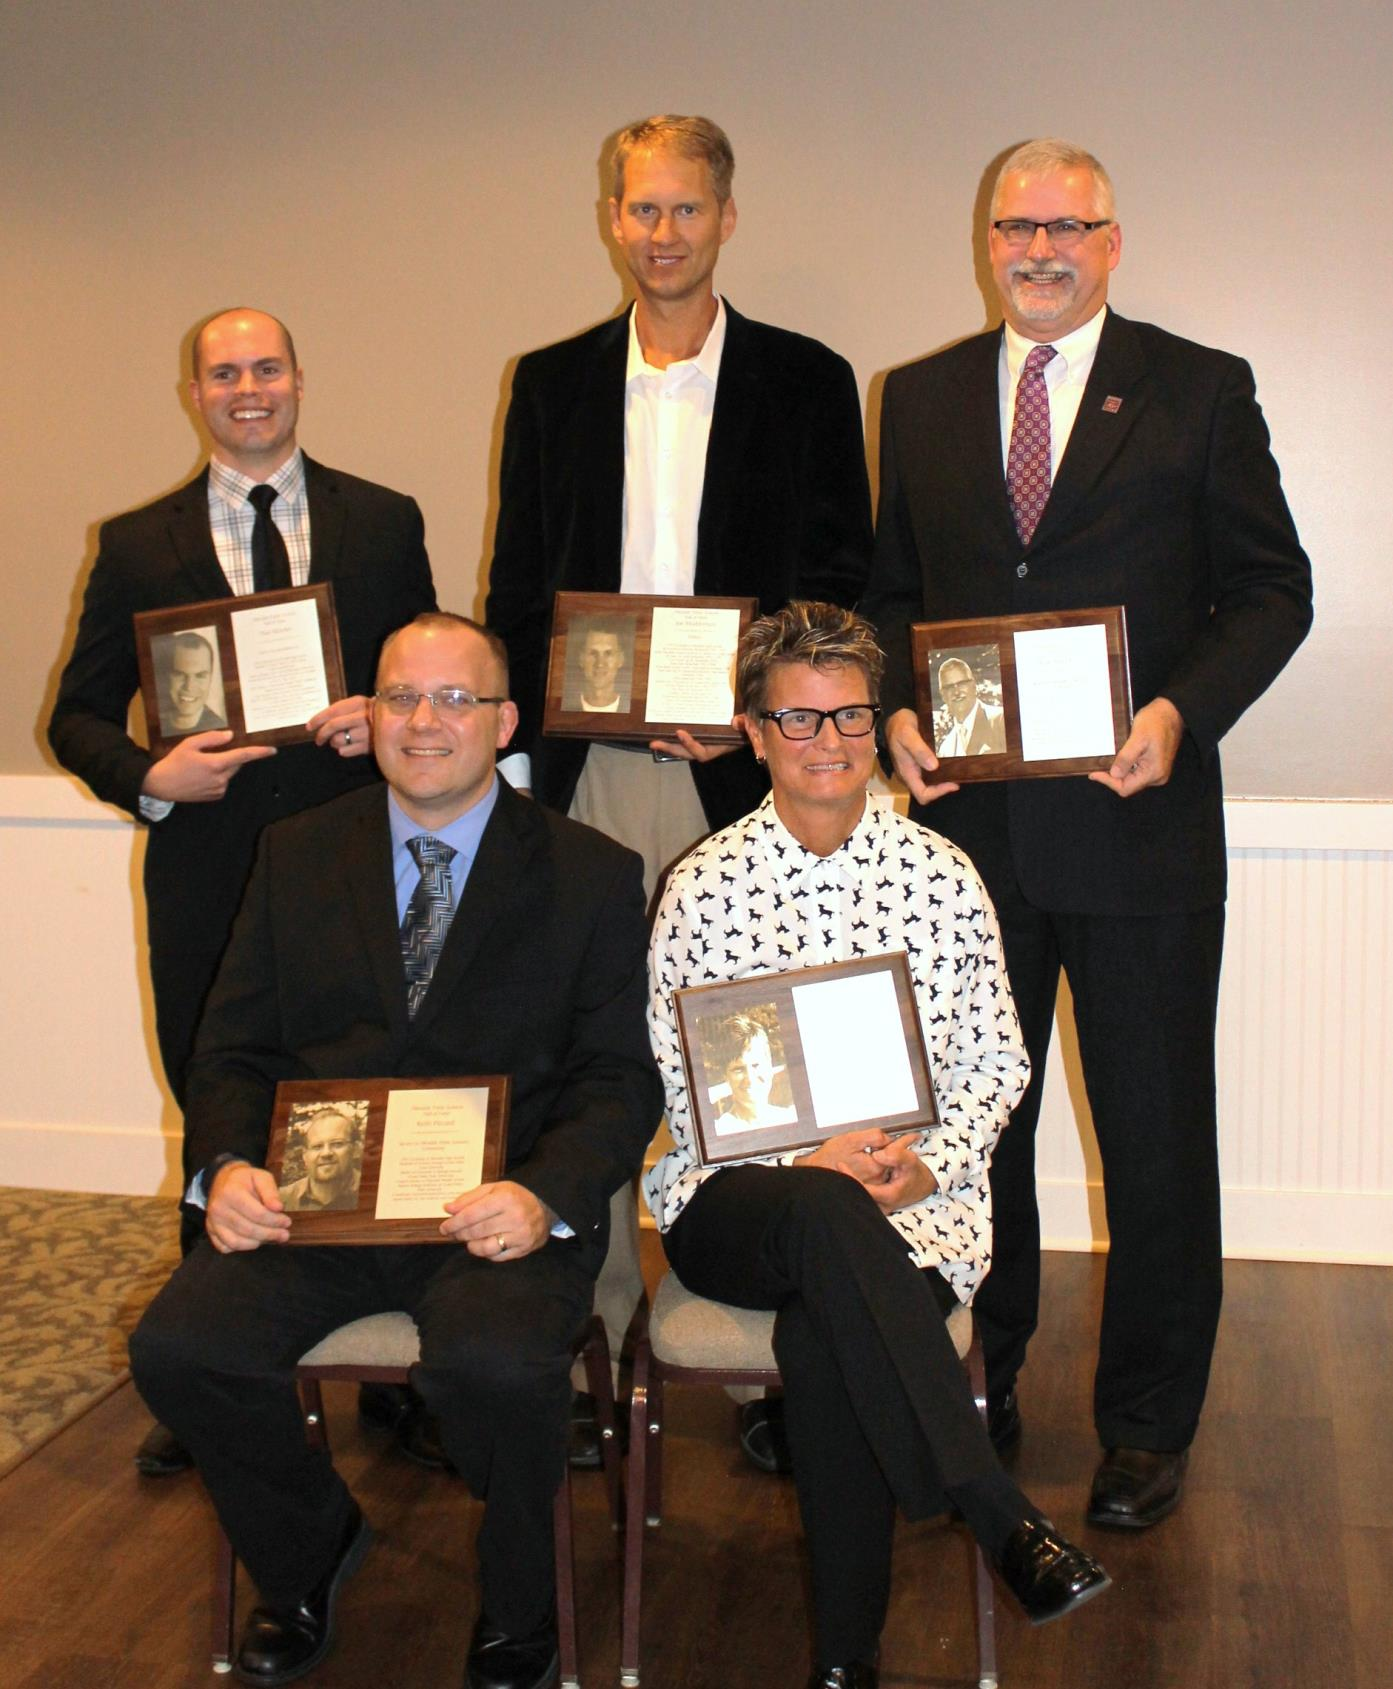 2016 AHS Alumni Hall of Fame Honorees